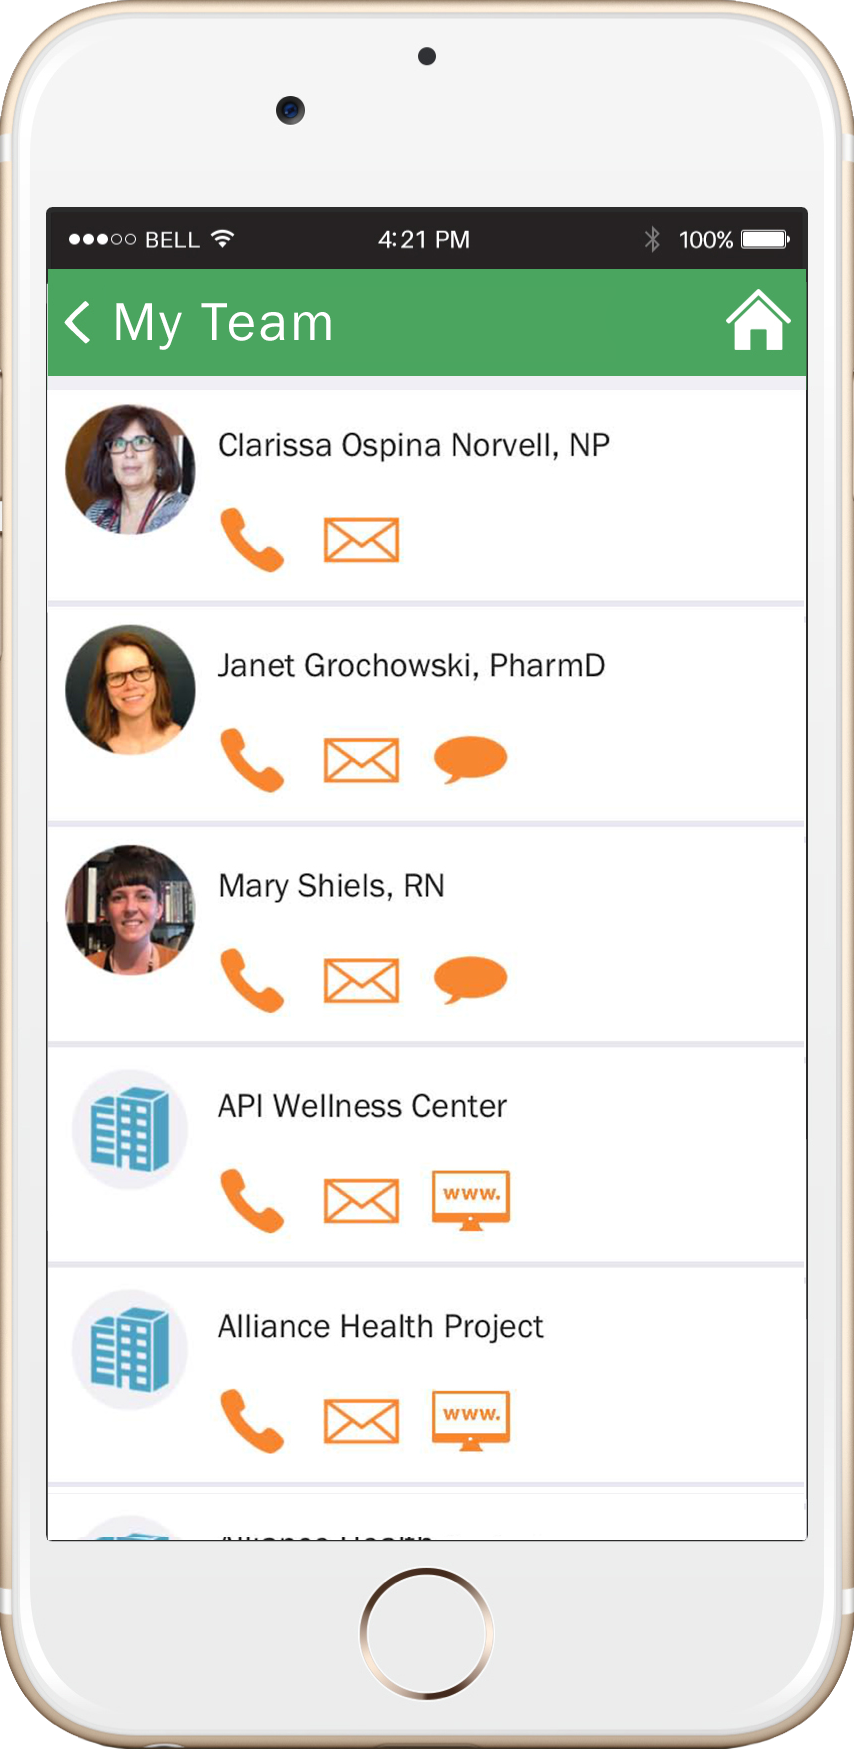 - My Team allows patients to communicate directly with their health care providers and access local resources.